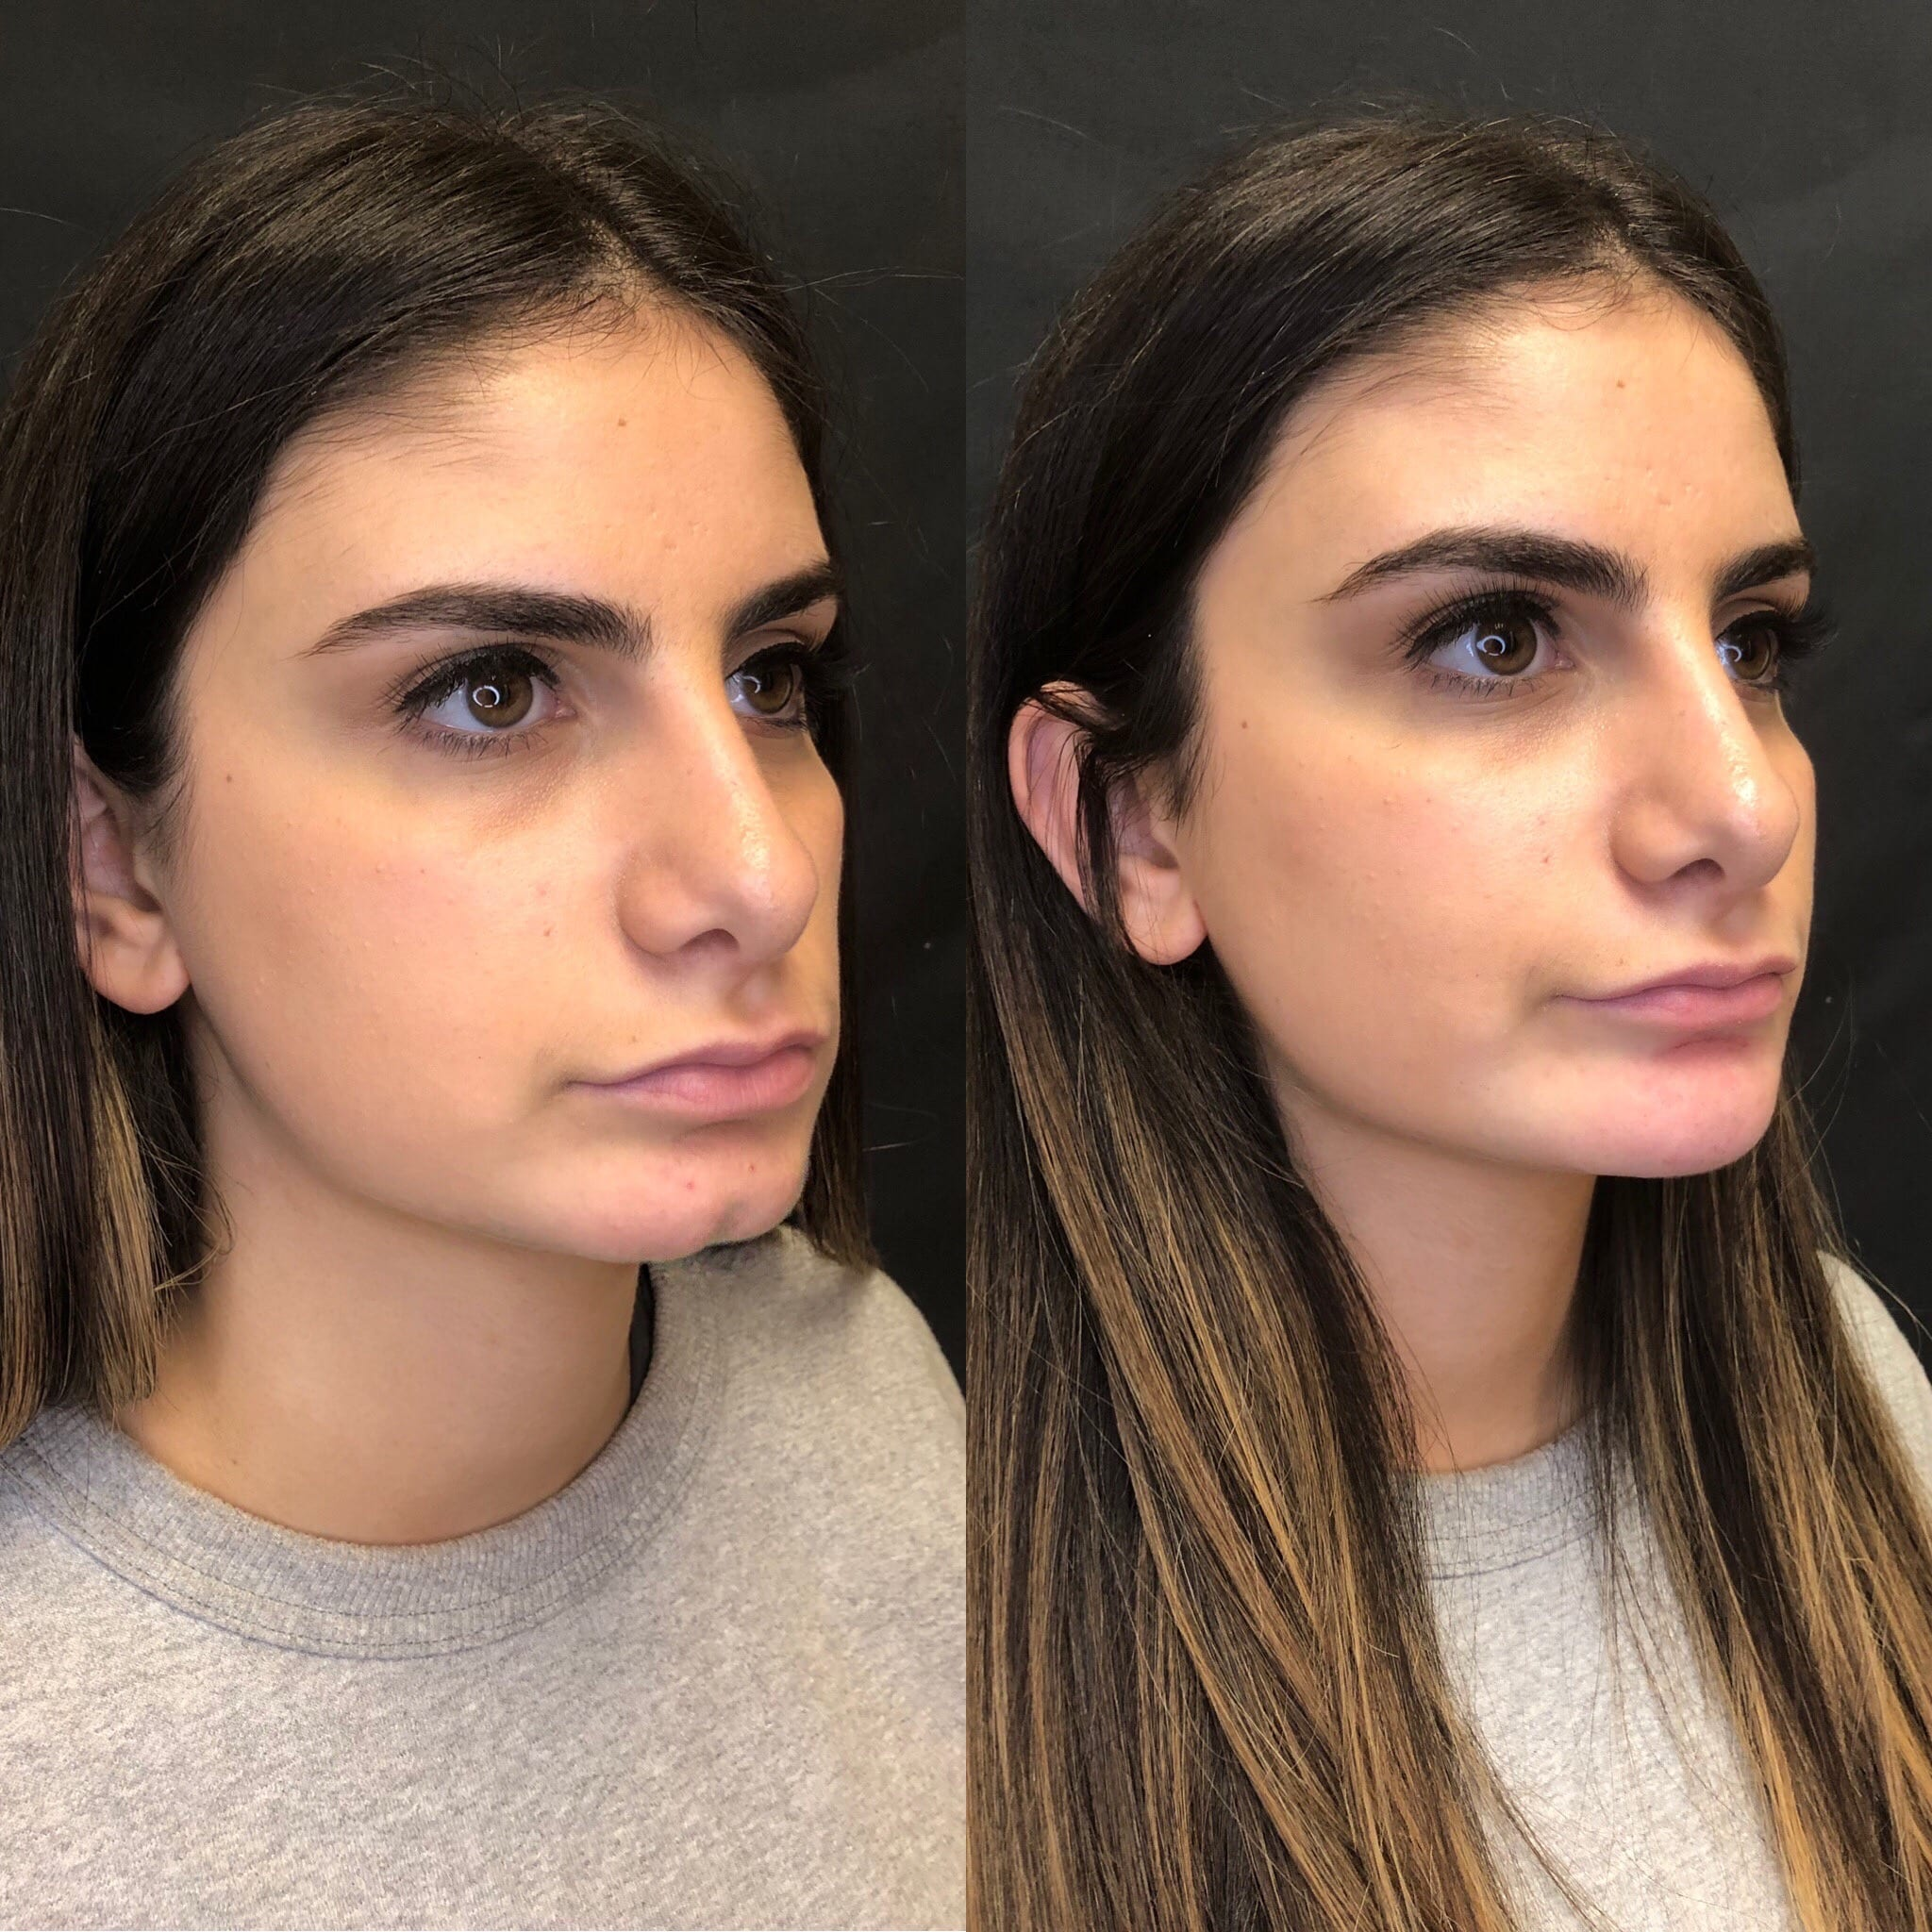 20 y/o Middle Eastern F immediately after injecting 1 full syringe of voluma to her chin cleft for reshaping.